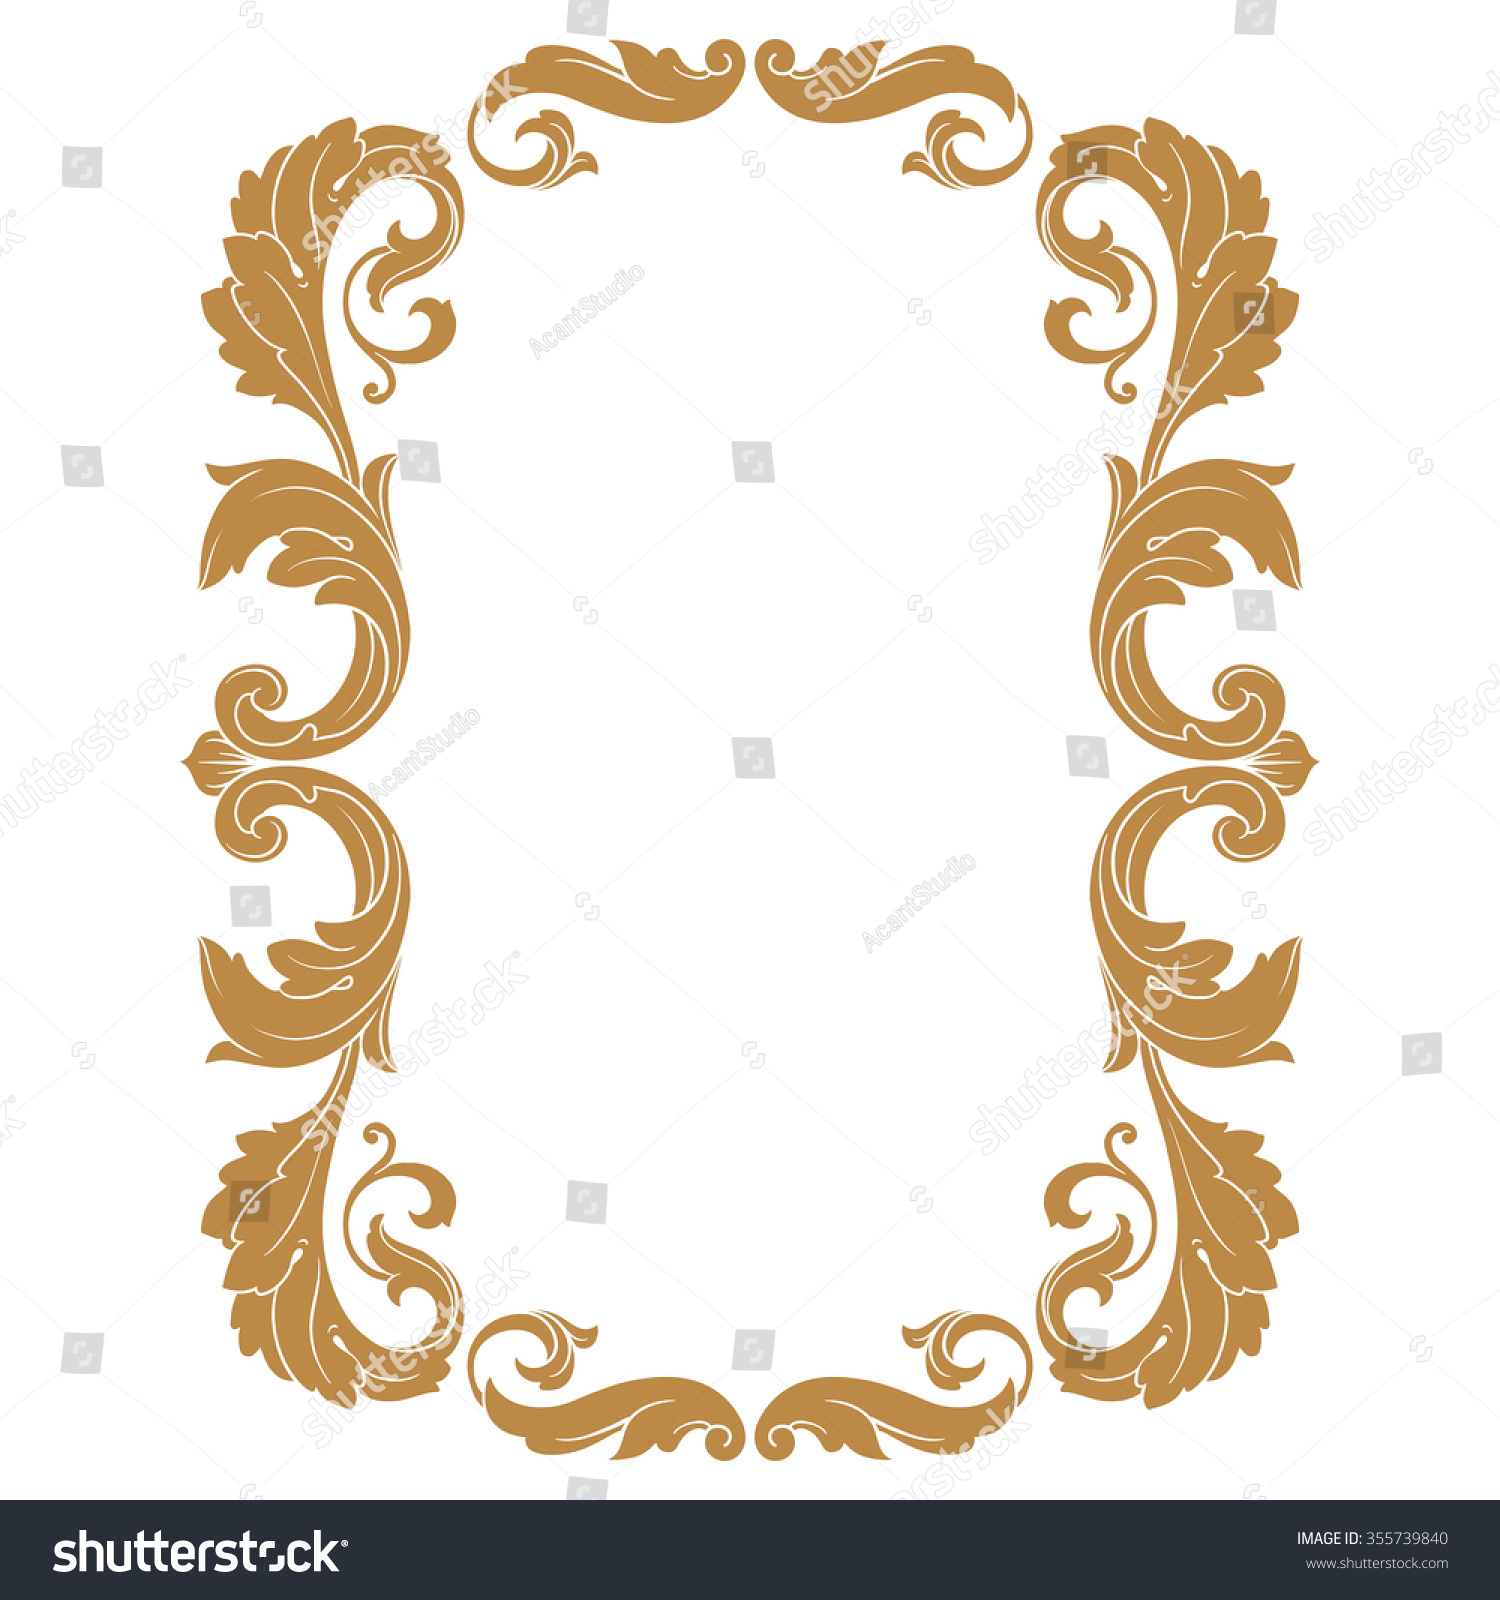 Golden Menu Template With Baroque Style: Premium Gold Vintage Baroque Frame Scroll Stock Vector